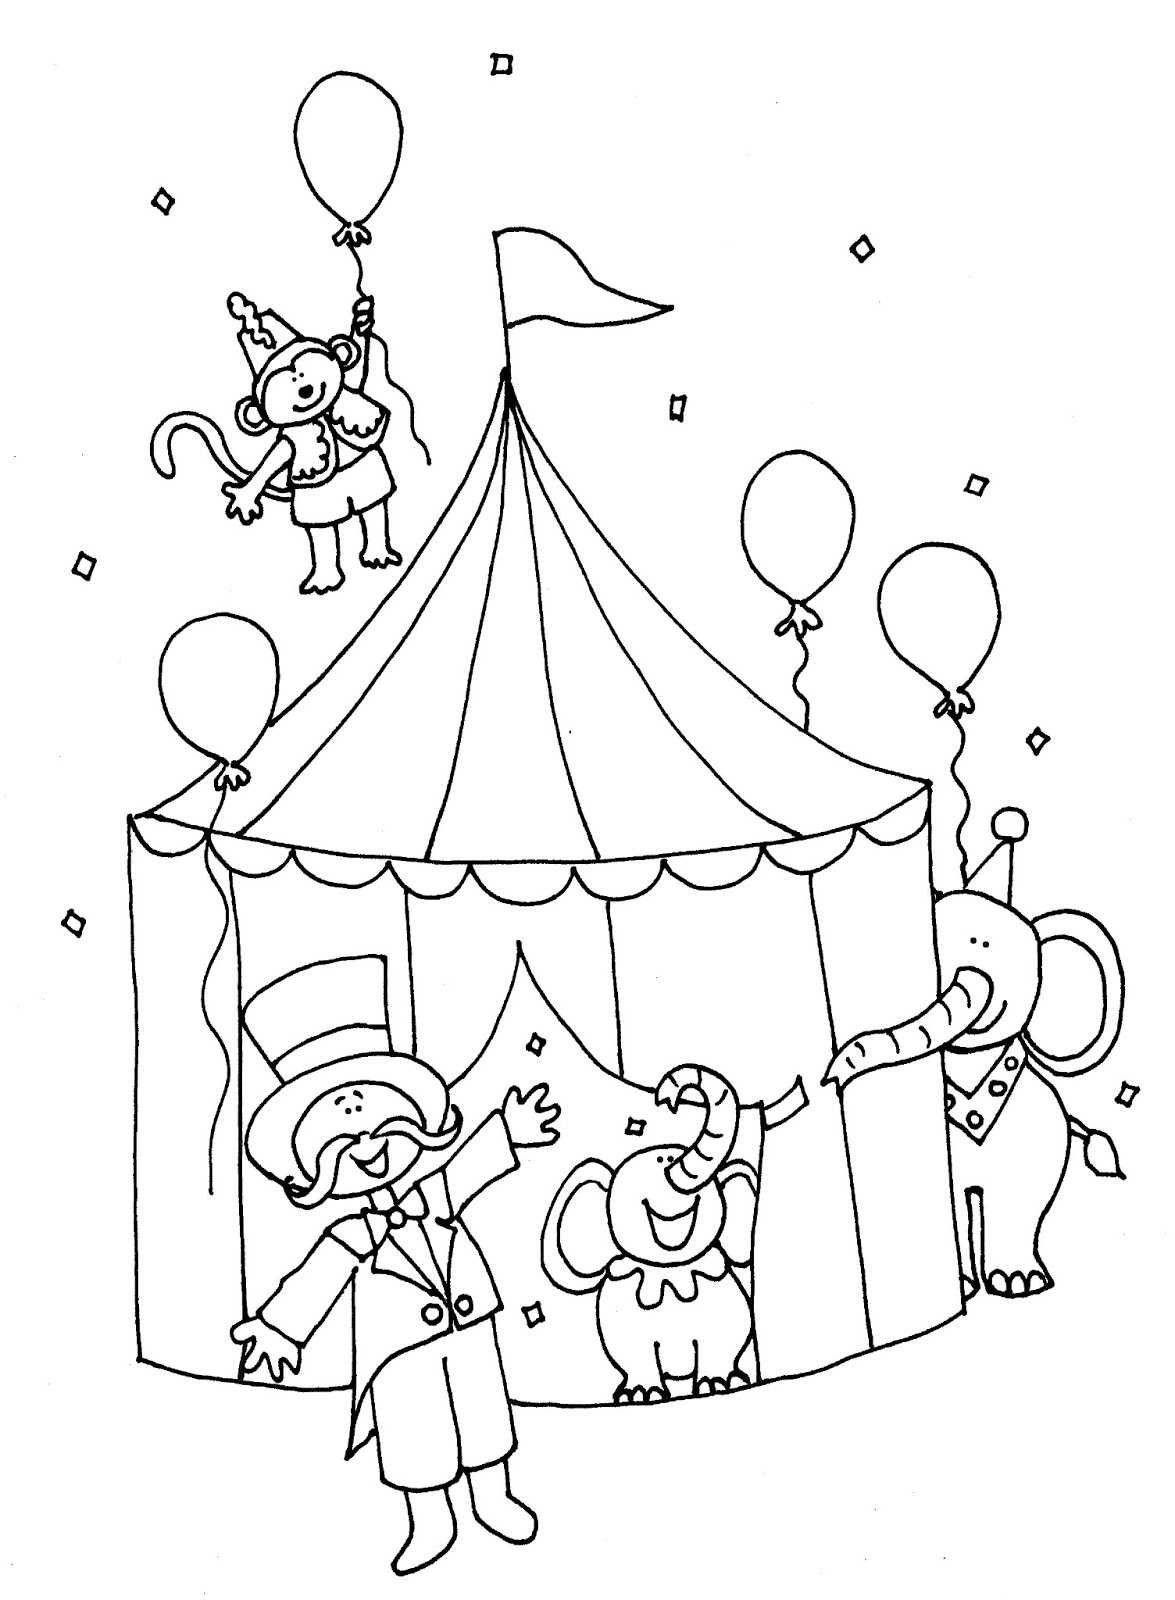 coloring pages circus monkey coloring pages circus printable coloring